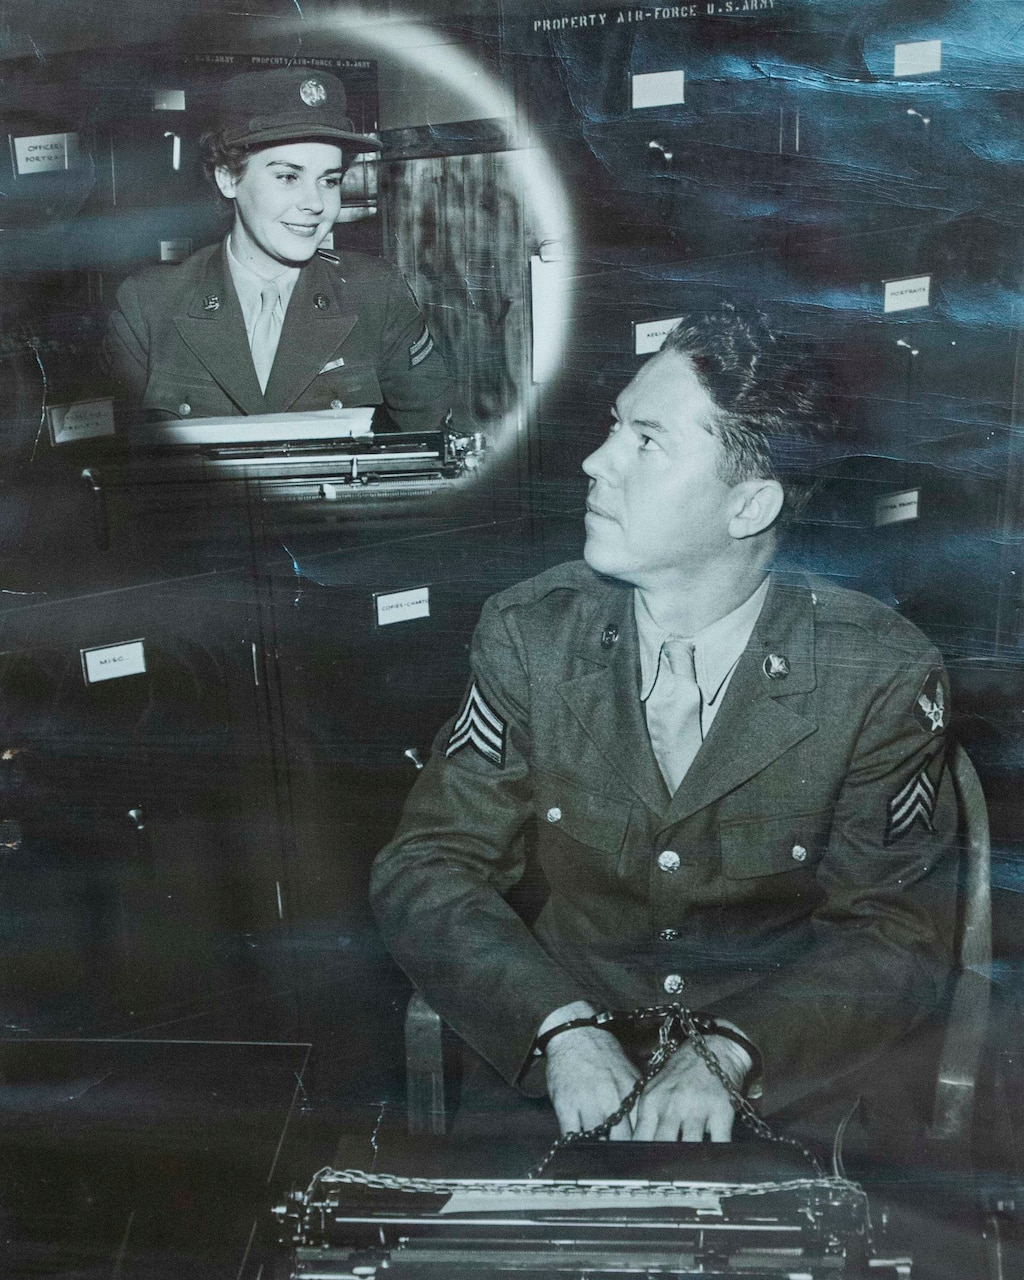 A World War II-era black-and-white recruitment photo shows a man at a typewriter looking up at a woman seated in front of a typewriter.